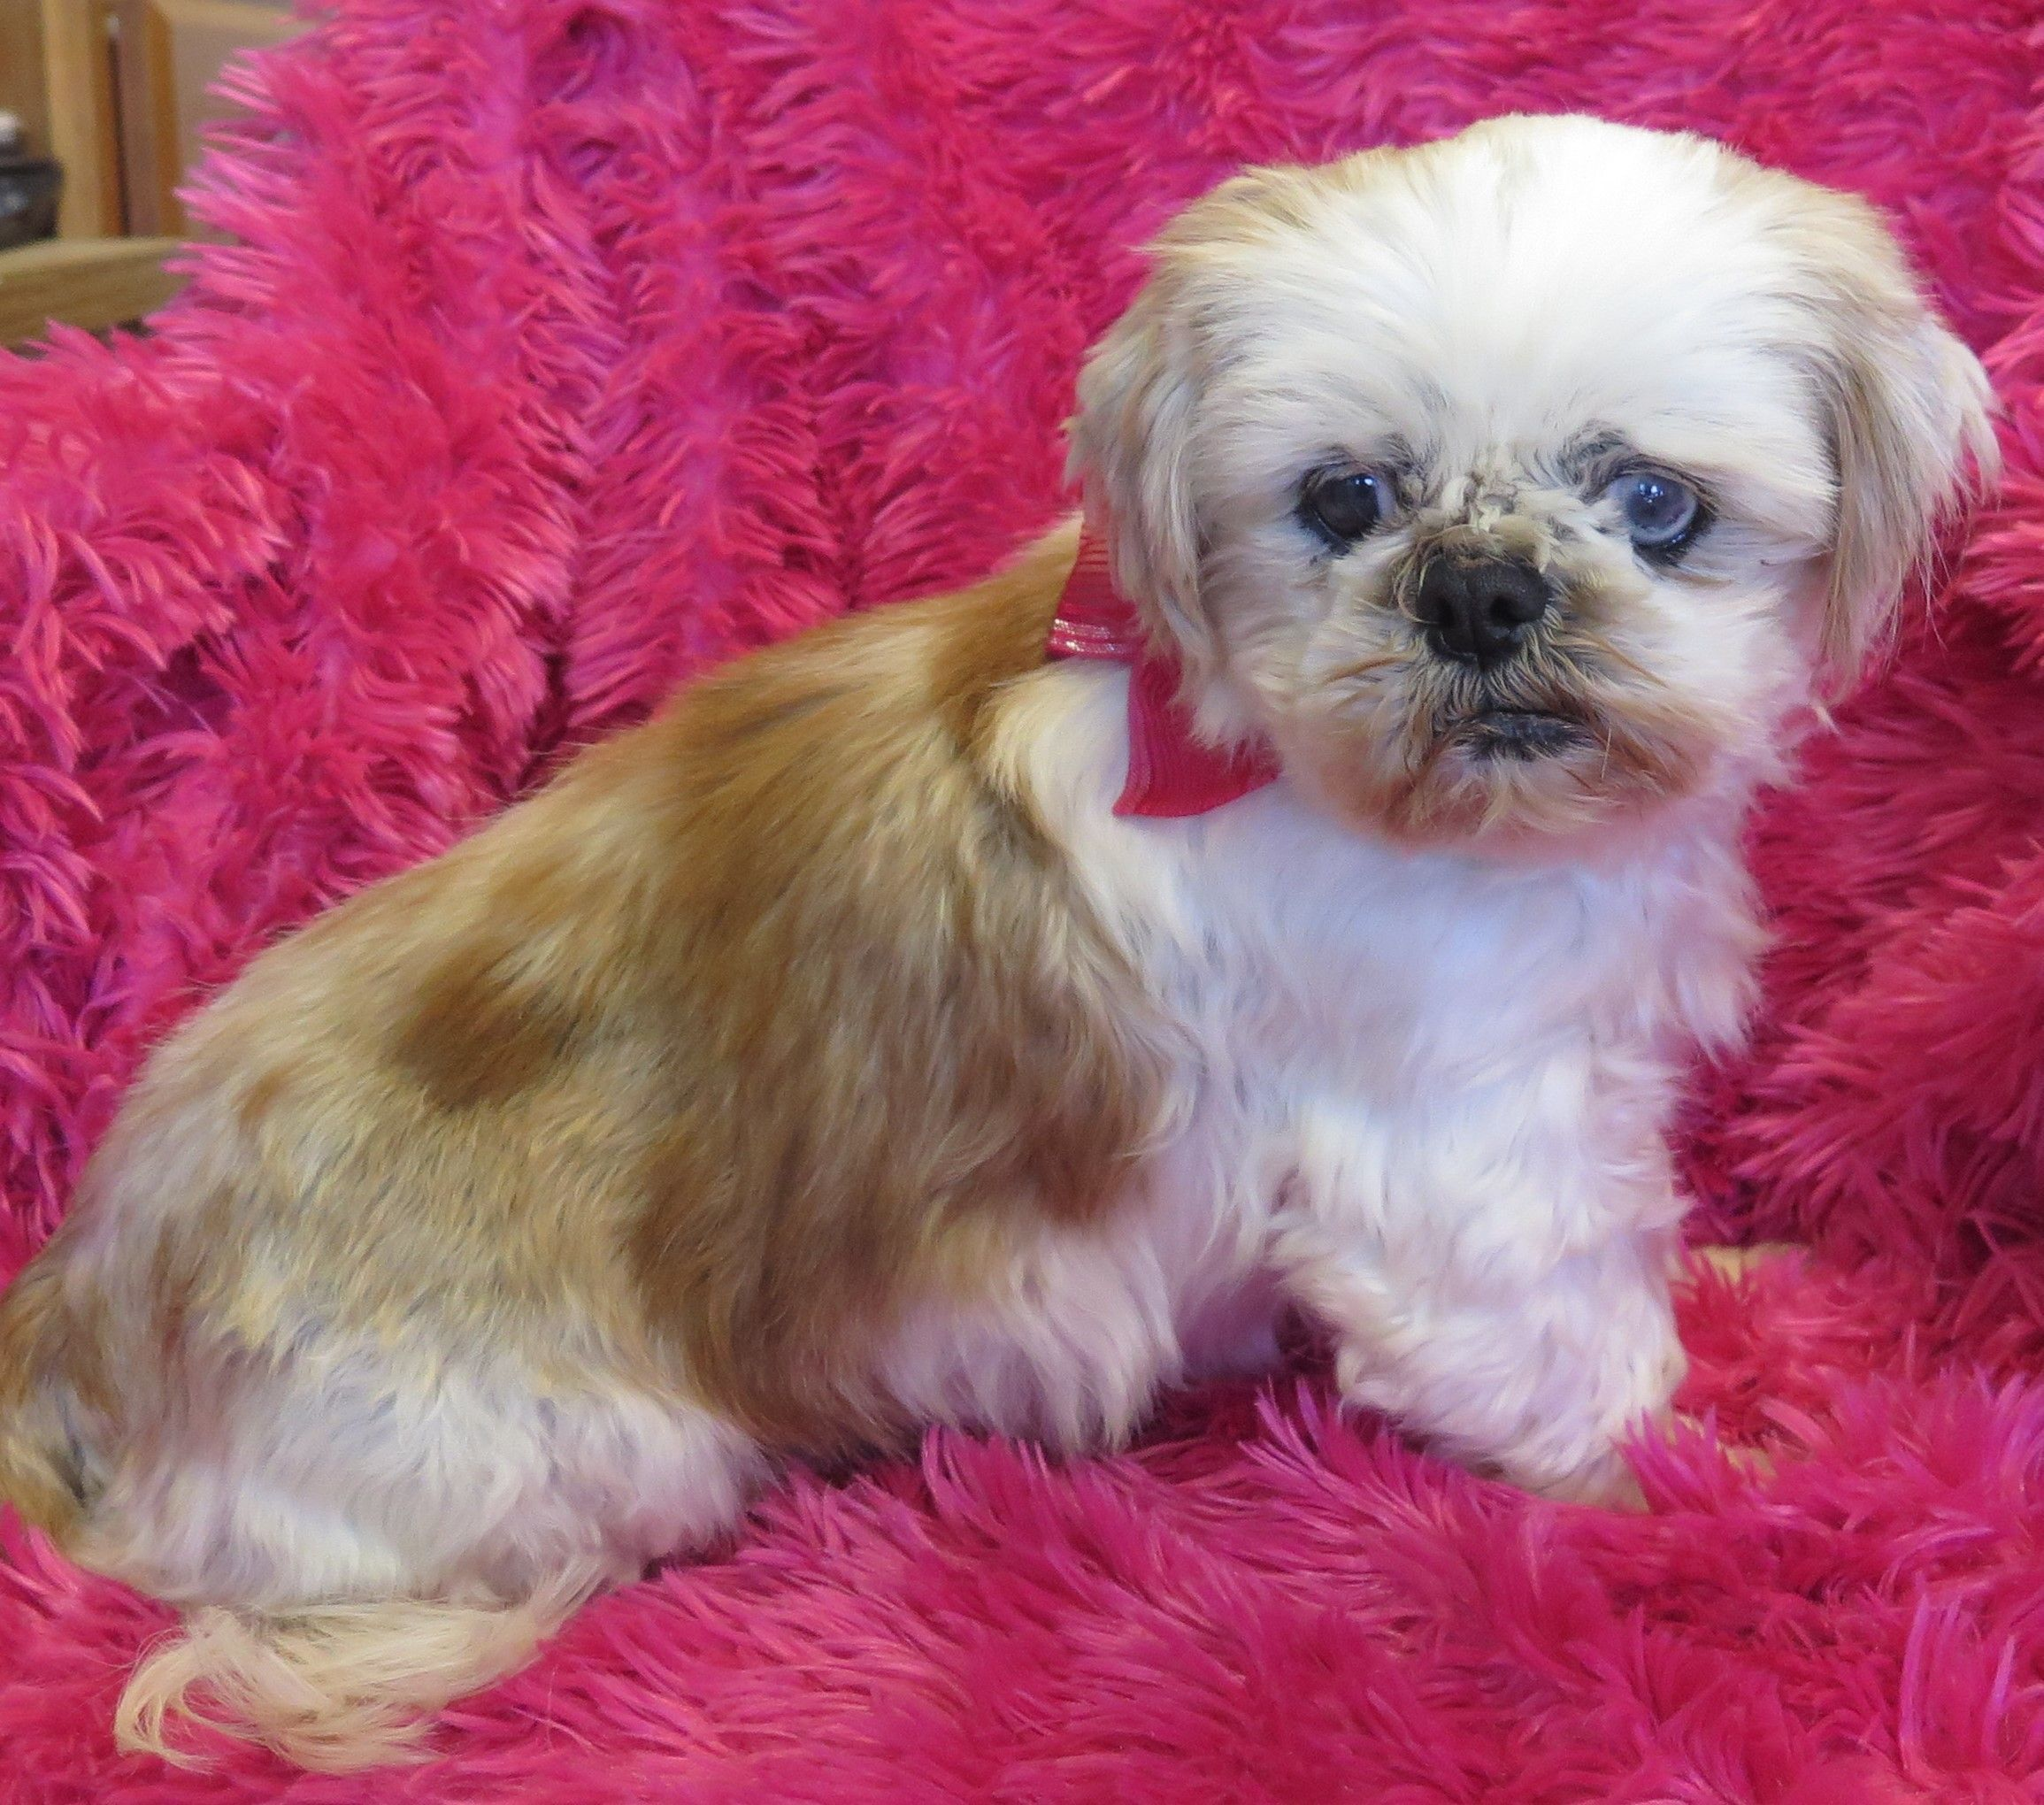 Kaitlyn Is An Adoptable Shih Tzu Searching For A Forever Family